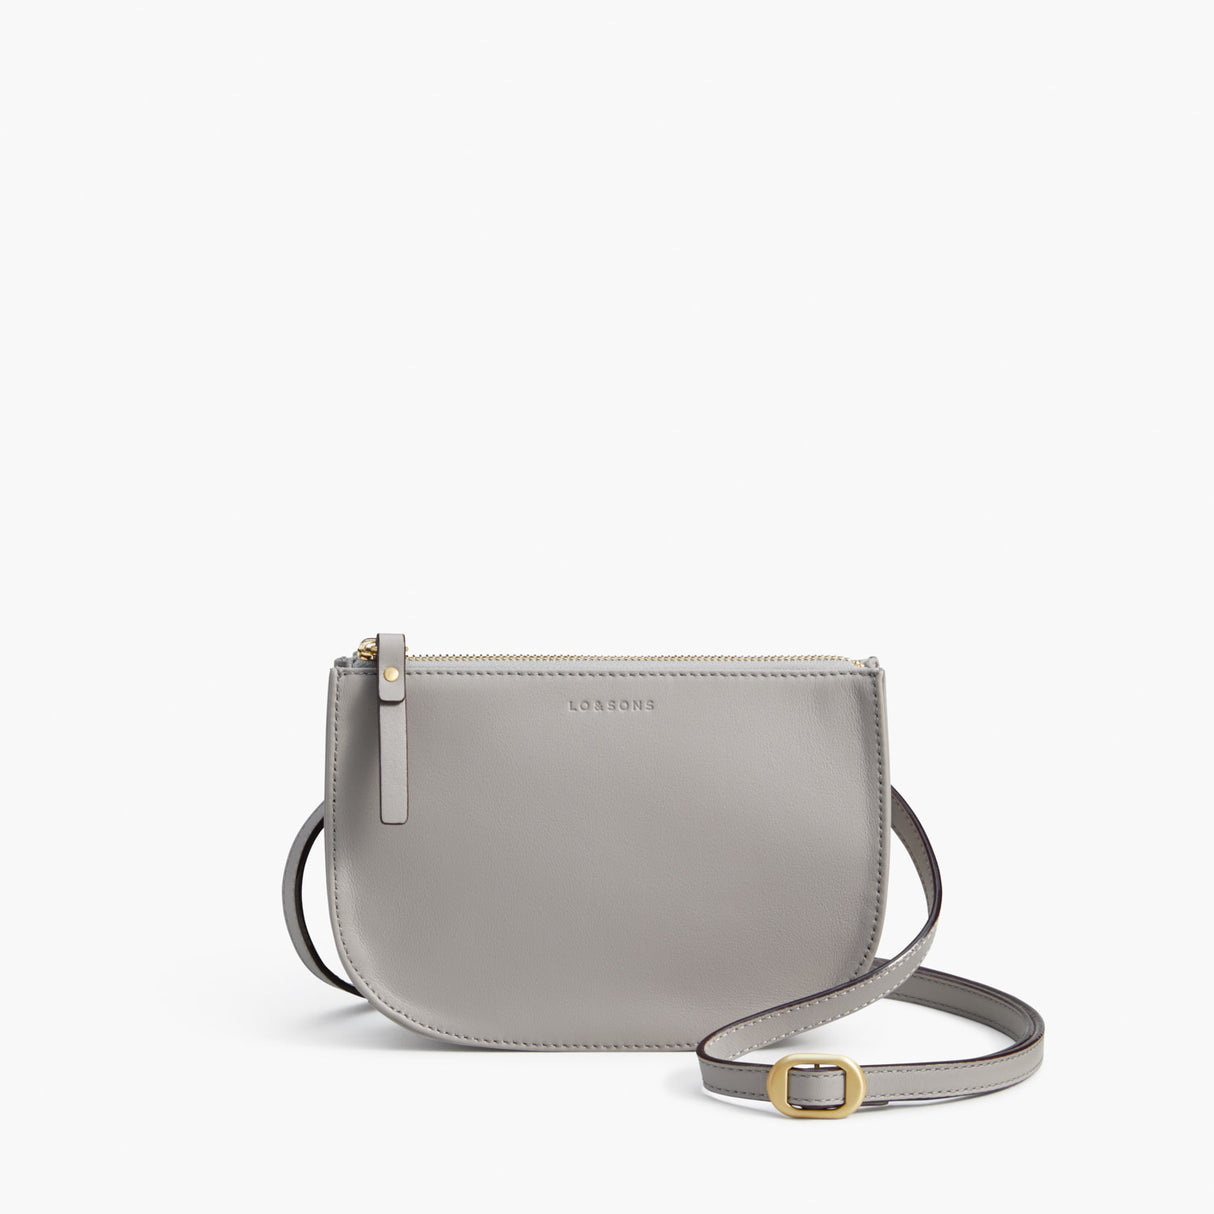 Front Crossbody - The Waverley 2 - Nappa Leather - Light Grey / Gold / Grey - Crossbody - Lo & Sons